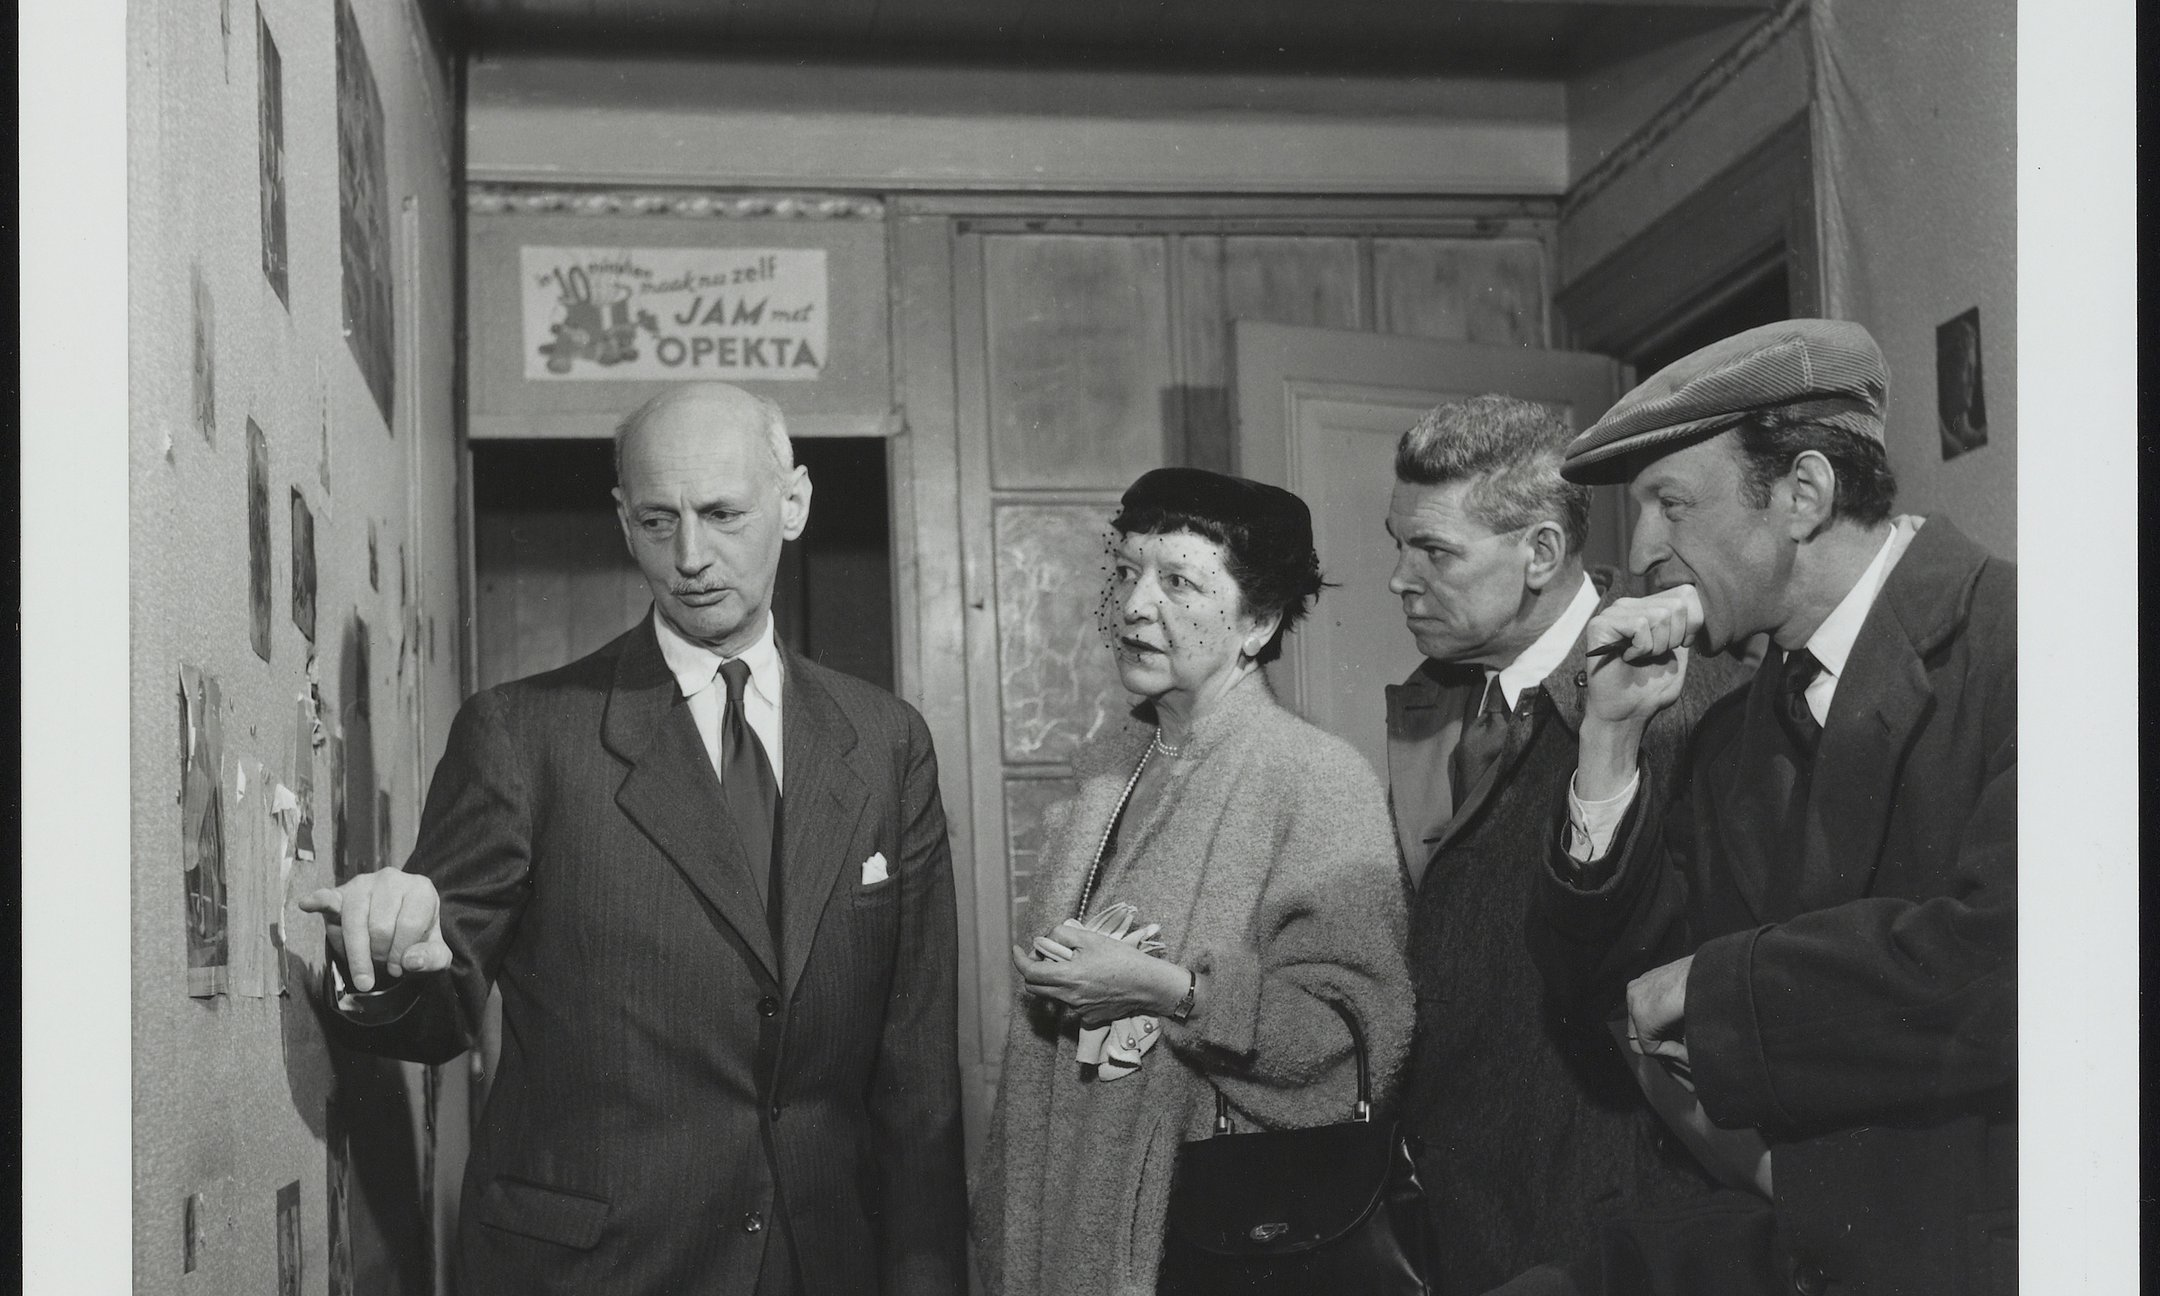 On the left: Otto Frank in 1954 in Anne's room in the Secret Annex. On the right: the writers and director of the play 'The Diary of Anne Frank', which opened on Broadway in 1955.